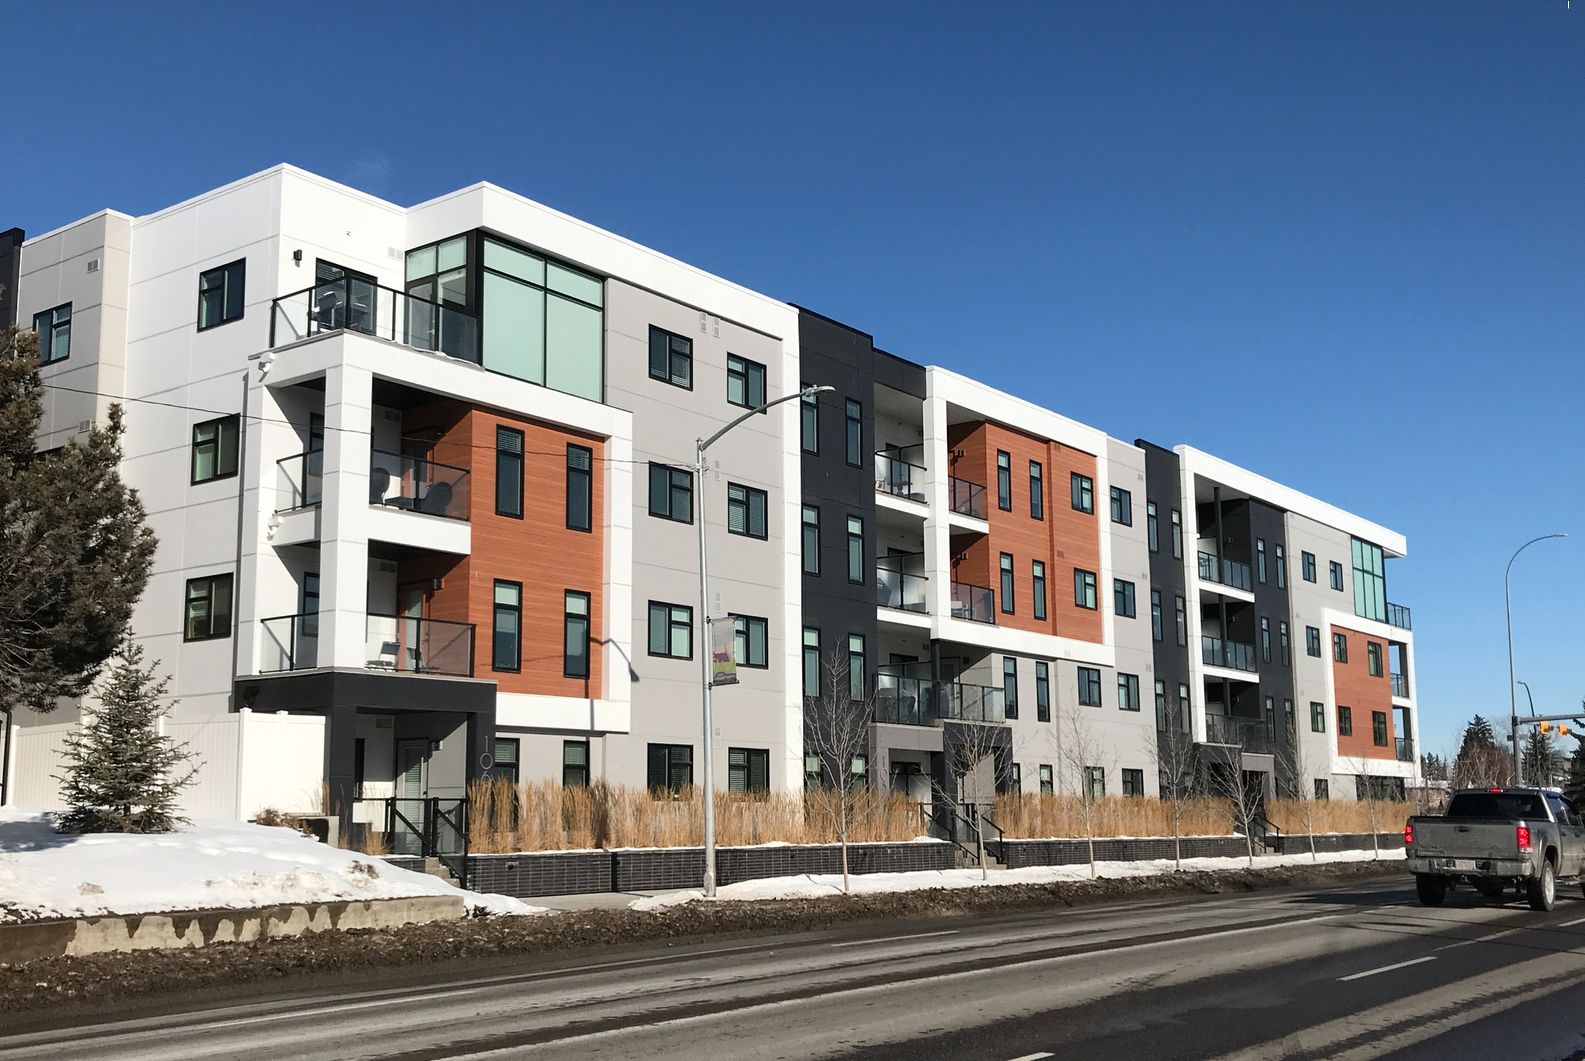 New infill condo on 17th Ave SW is creeping west from Crowchild to Sarcee Trail. However, this is not new as there are several residential buildings taller than four storeys from the 70s and 80s.